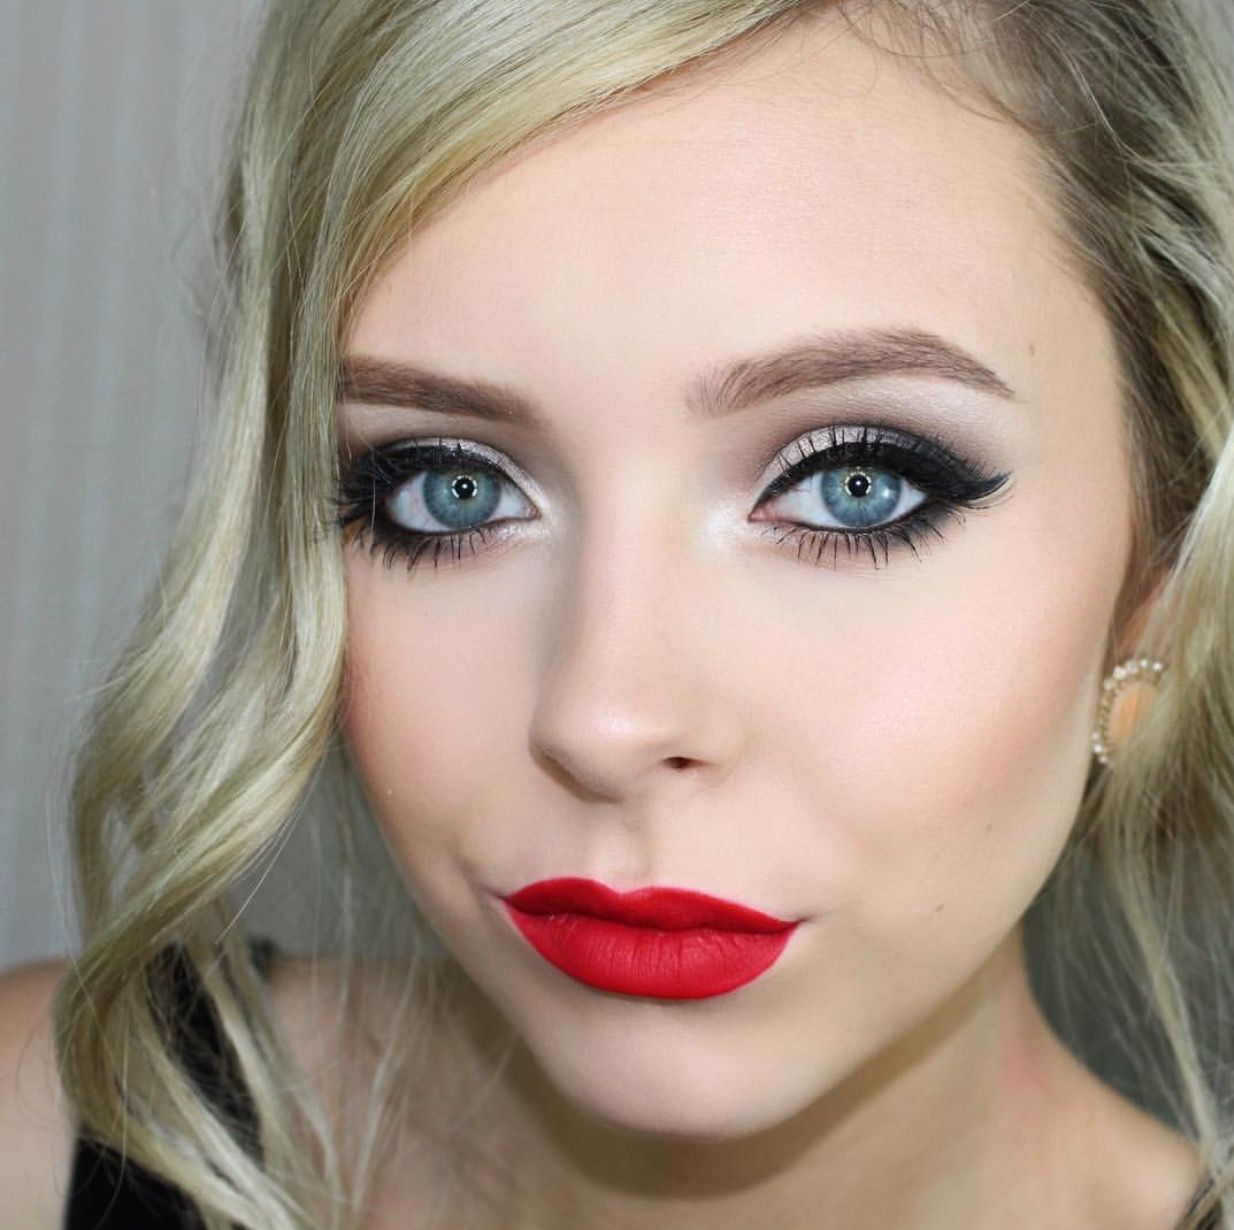 Makeup by cosmobyhaley Red lipstick makeup blonde